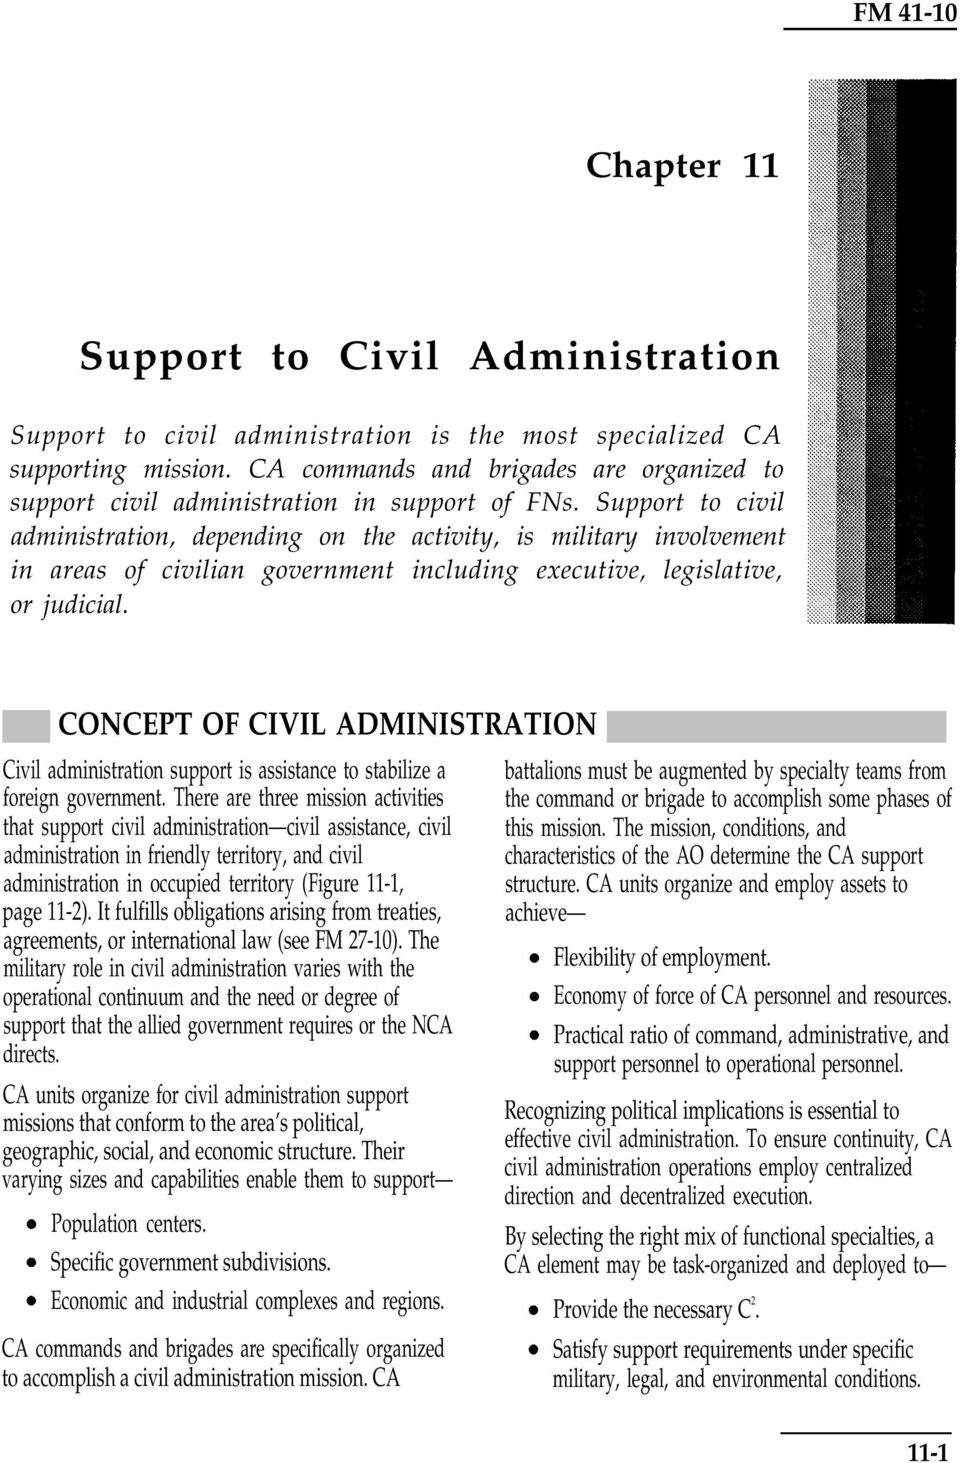 Support to civil administration, depending on the activity, is military involvement in areas of civilian government including executive, legislative, or judicial.